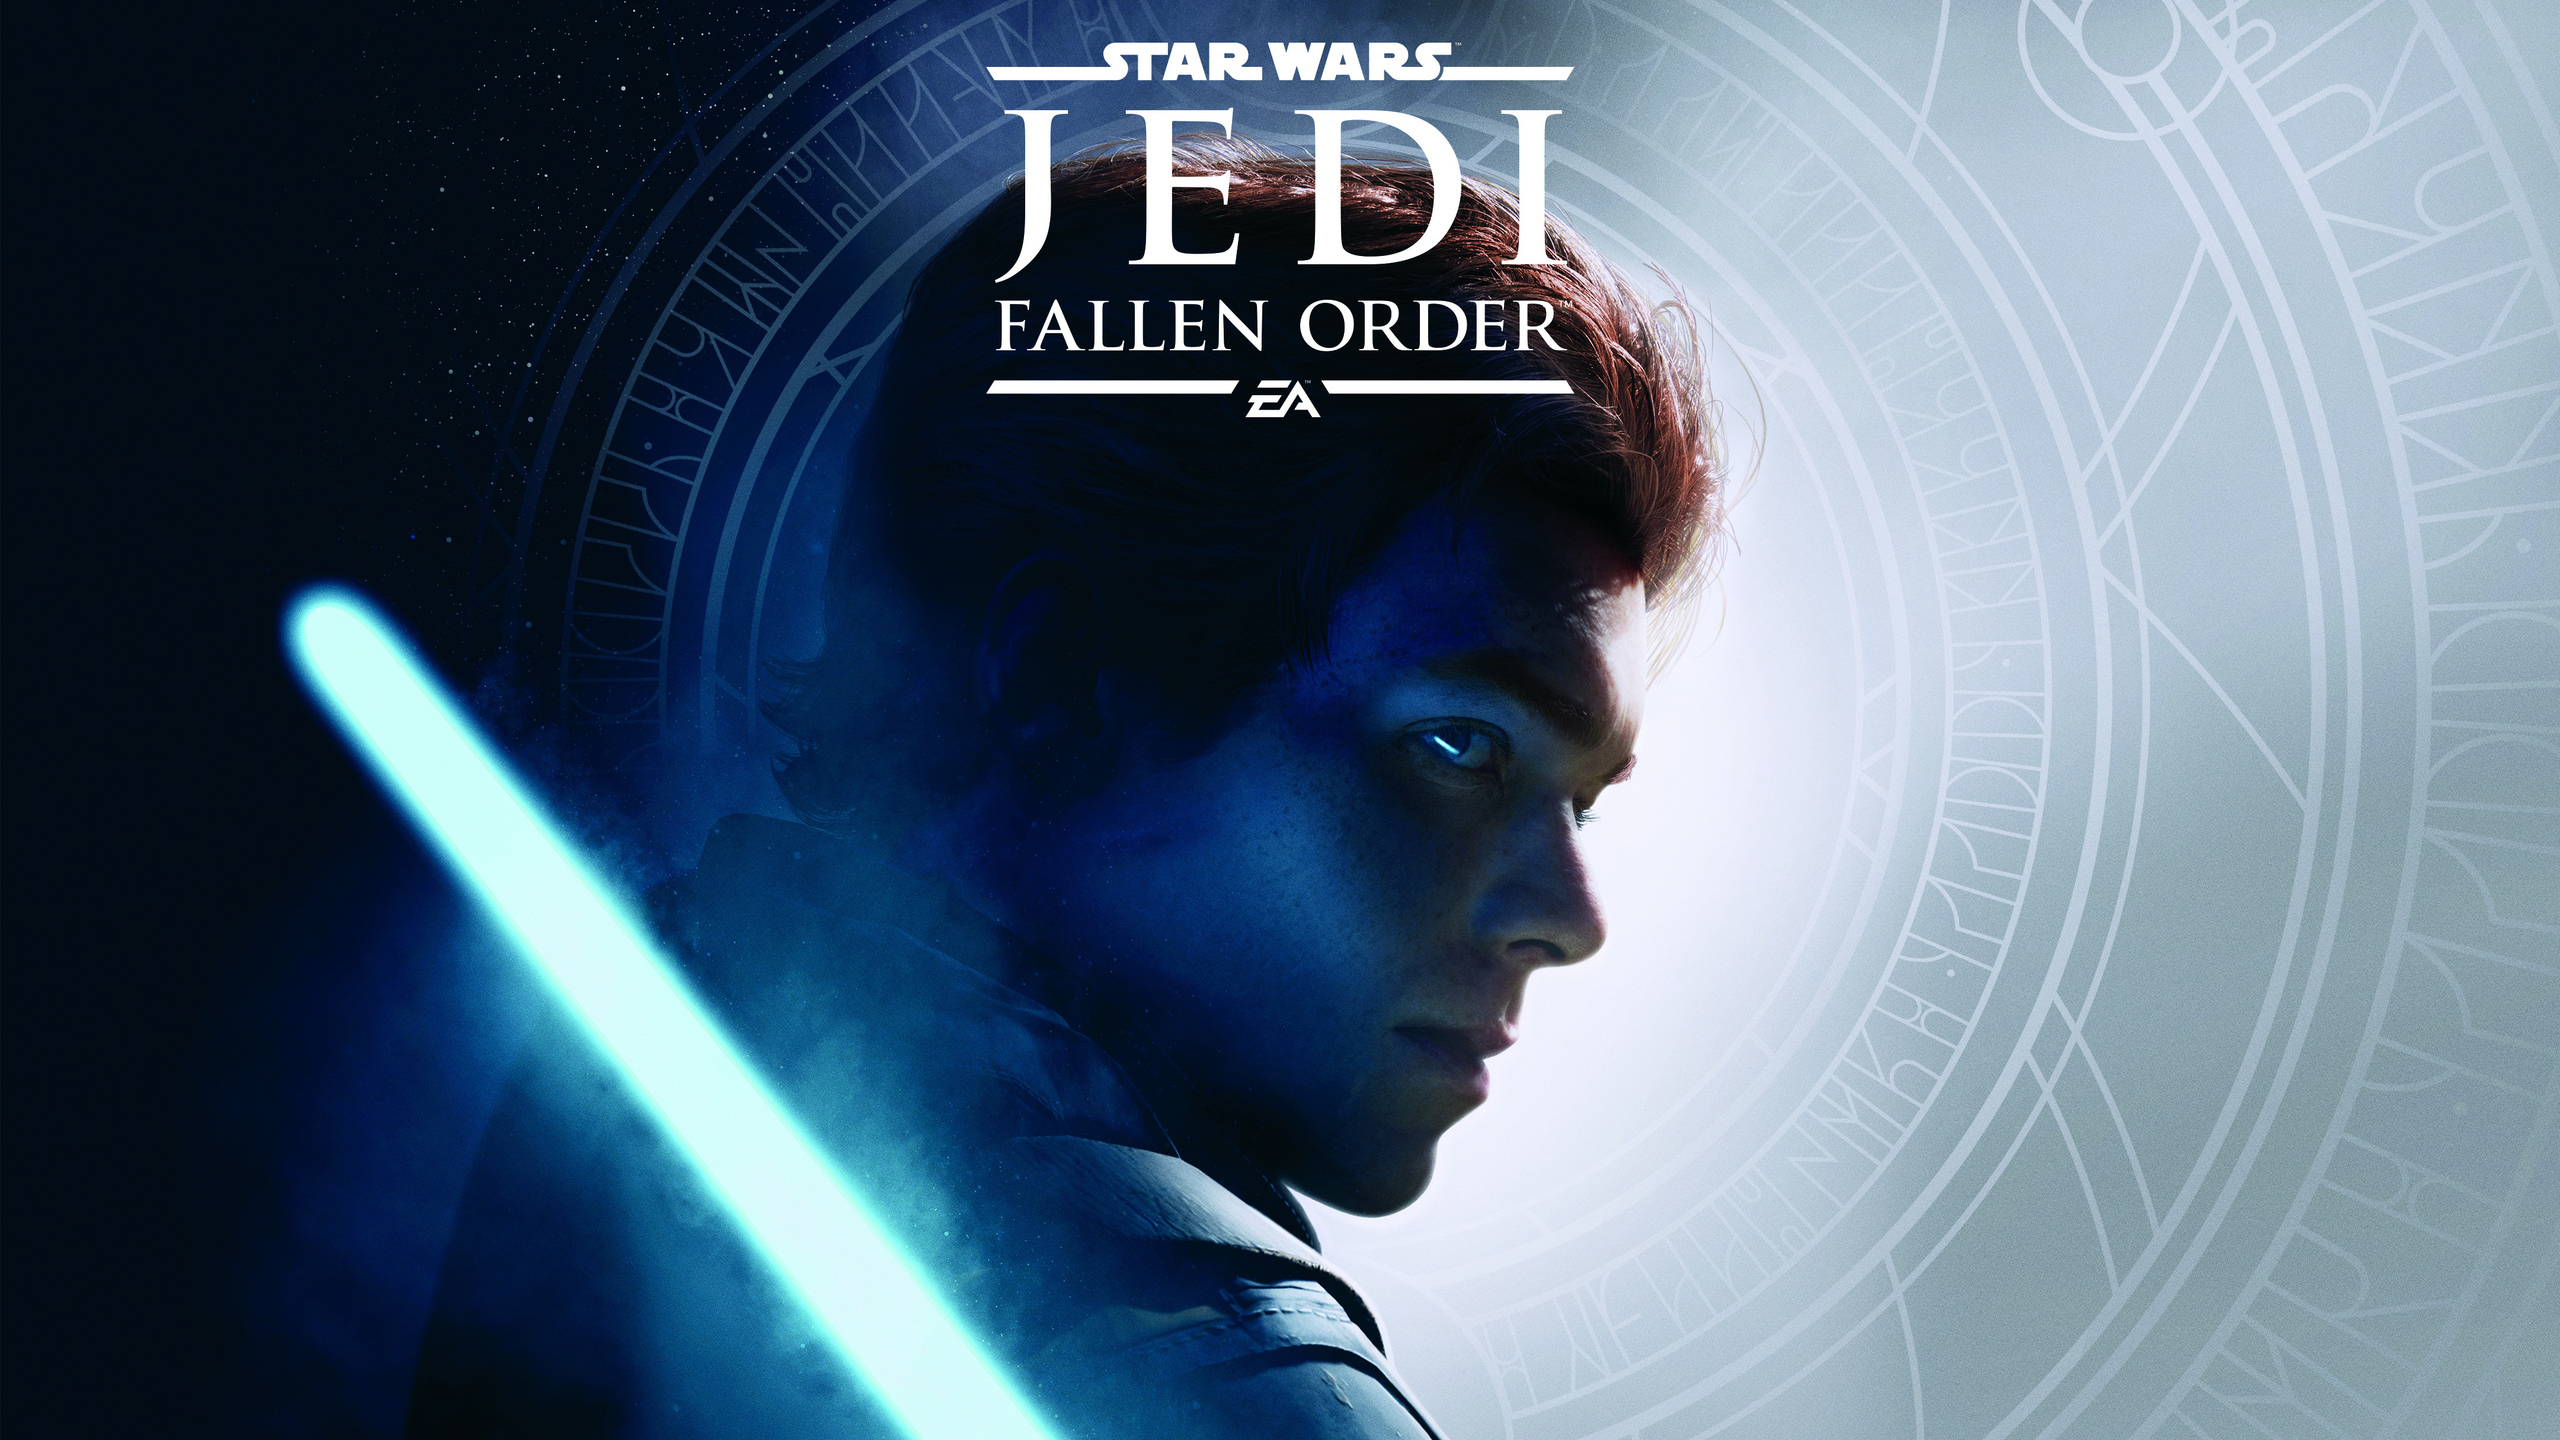 2560x1440 Star Wars Jedi Fallen Order 4k 2019 1440p Resolution Hd 4k Wallpapers Images Backgrounds Photos And Pictures